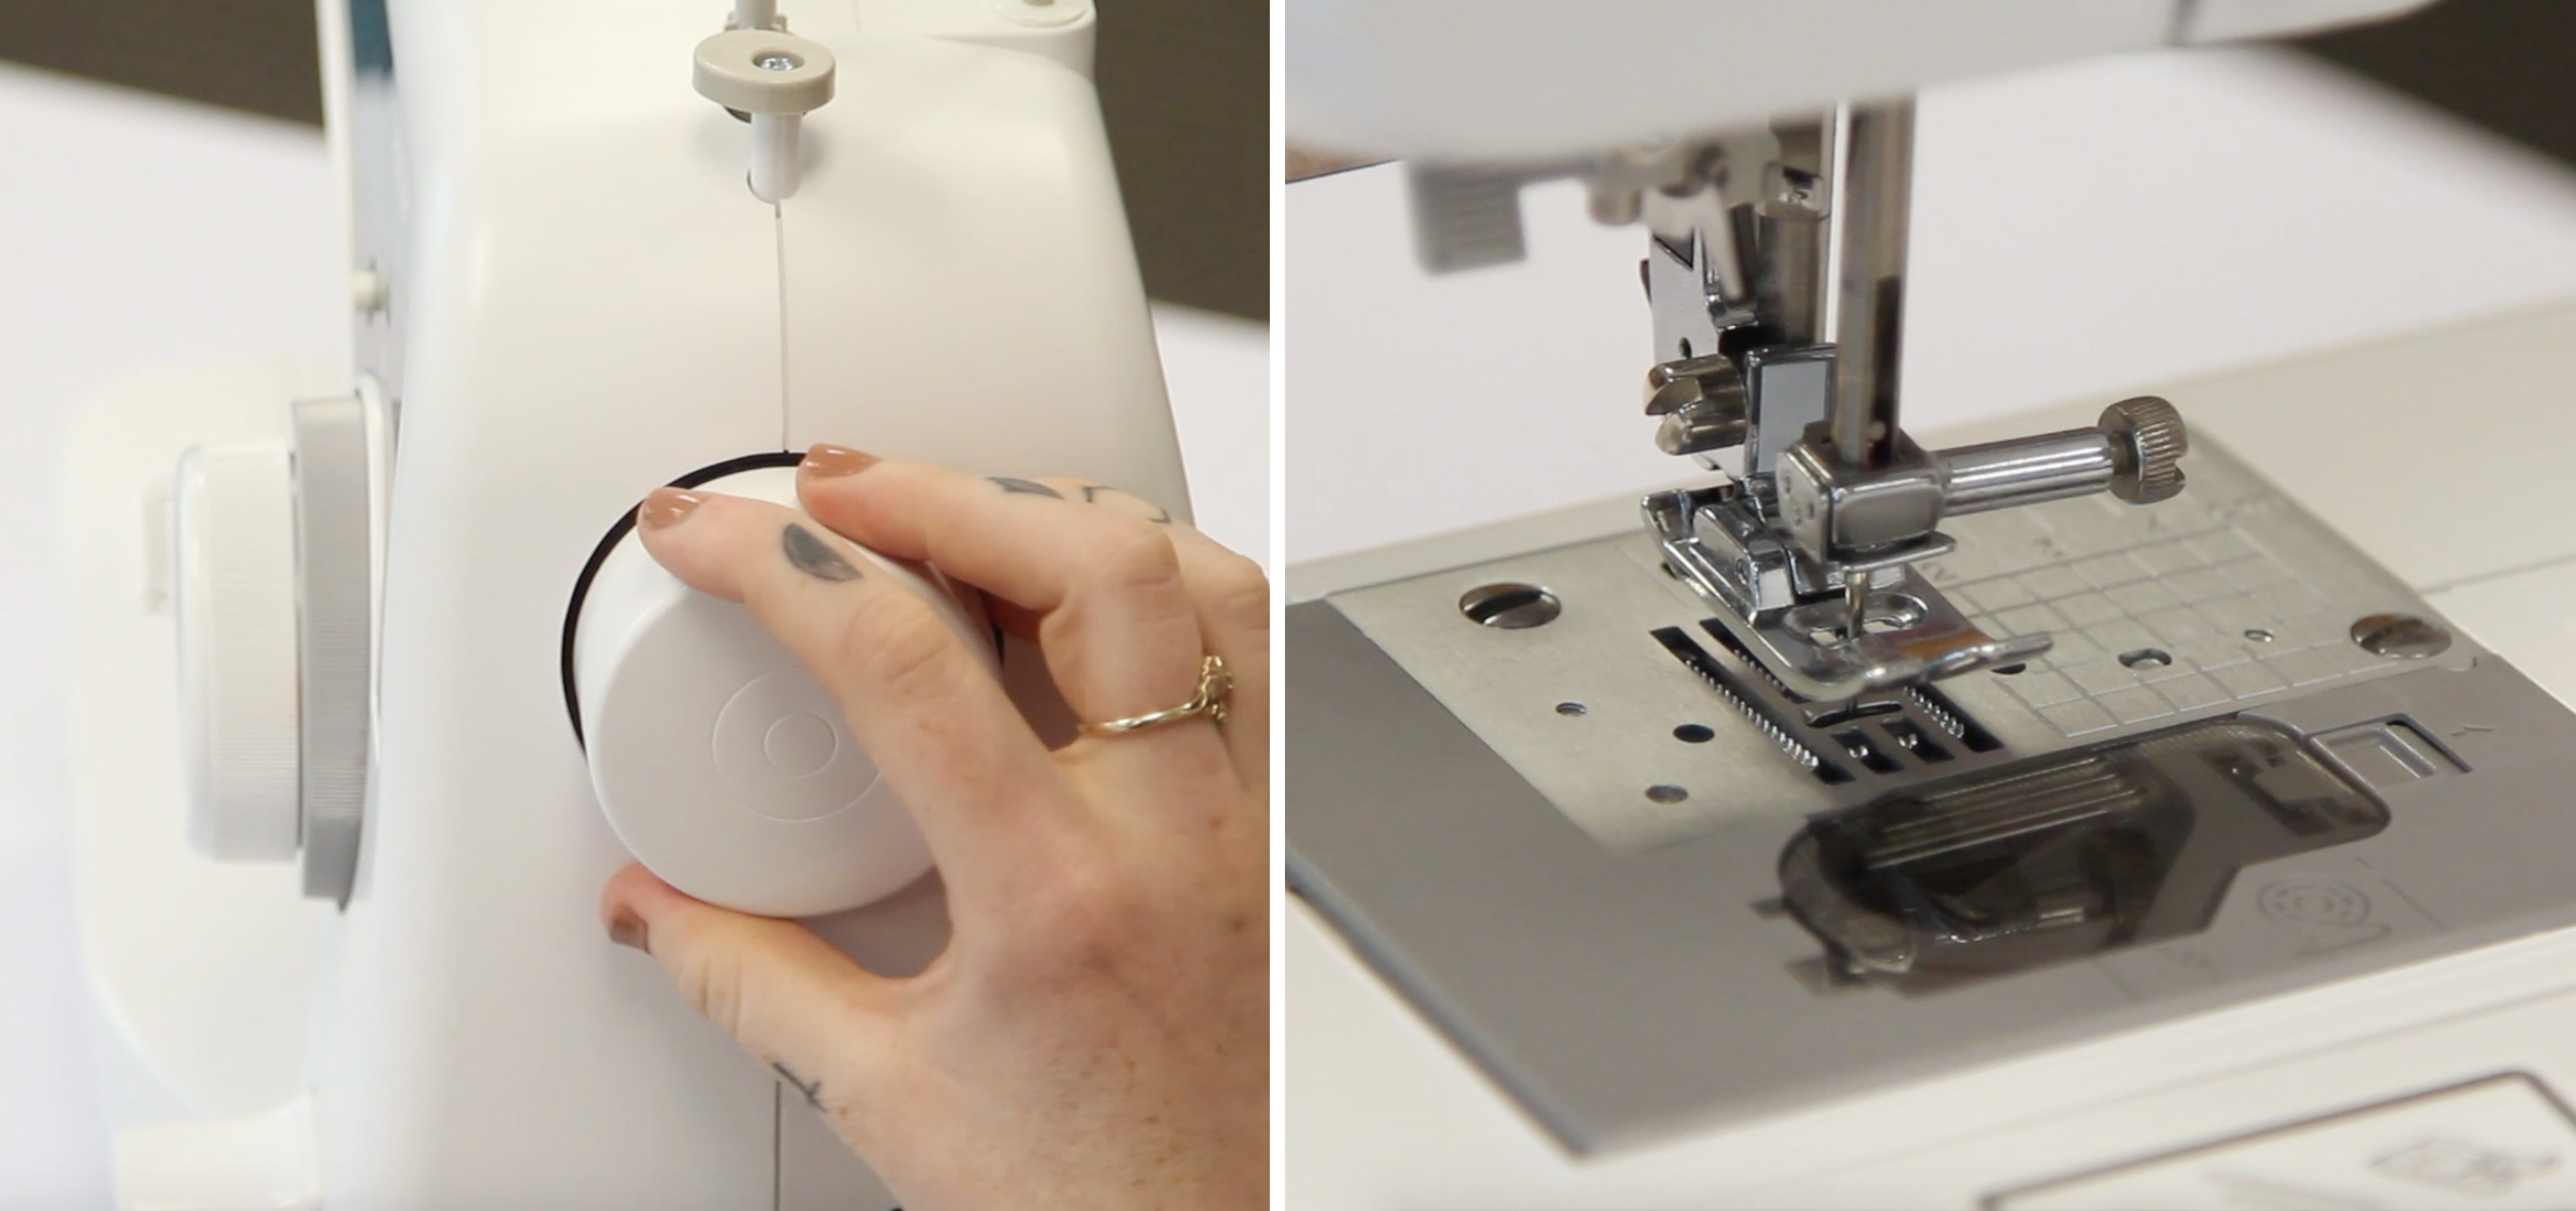 Needle in the form of a sewing machine